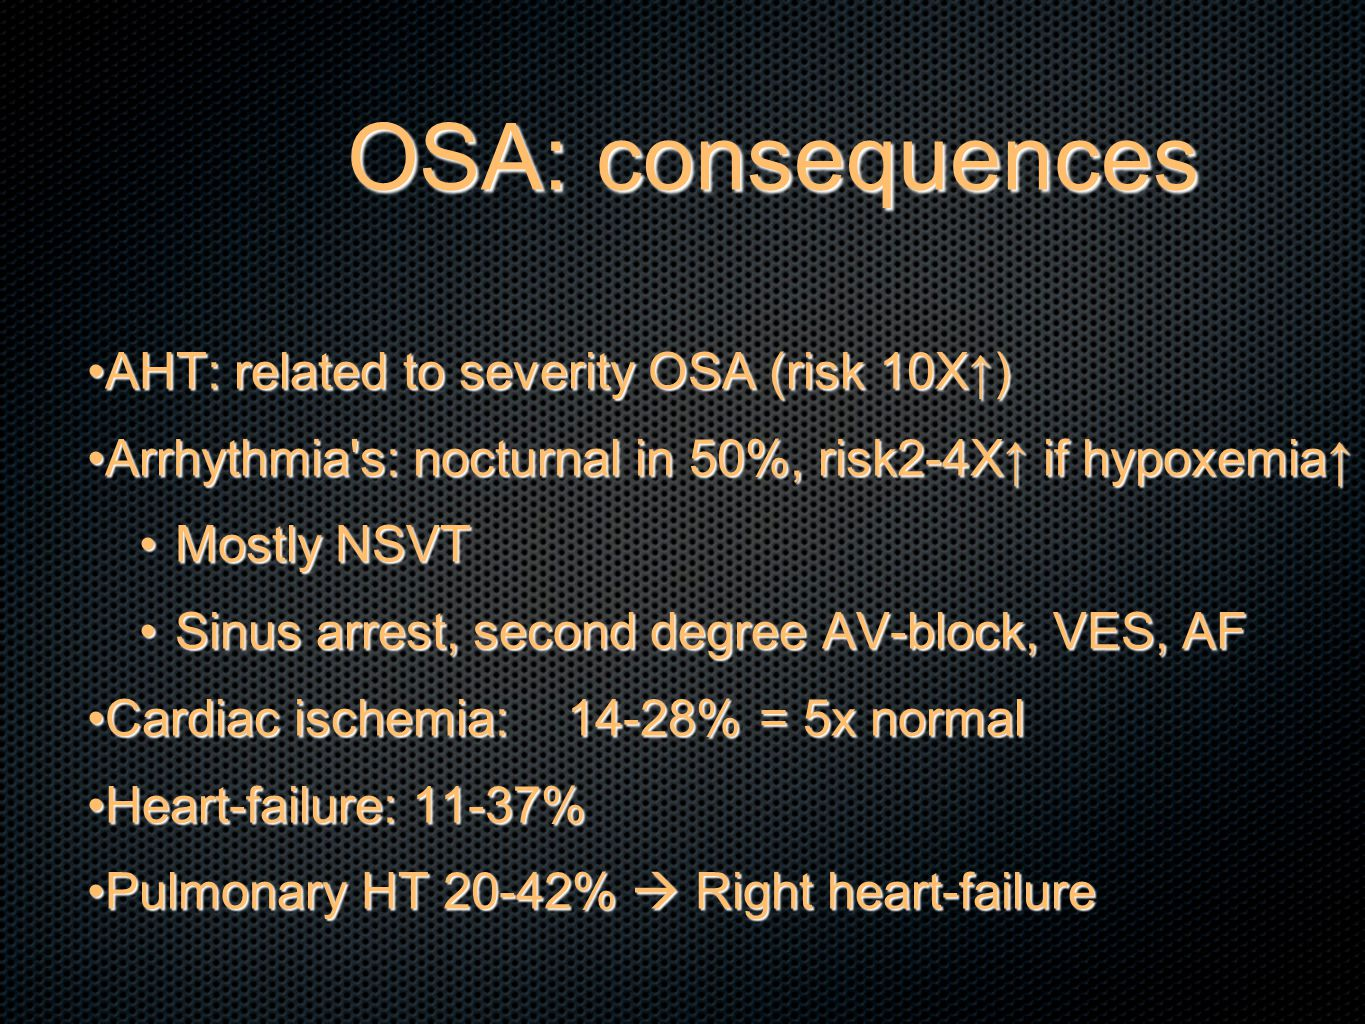 OSA: consequences AHT: related to severity OSA (risk 10X↑)AHT: related to severity OSA (risk 10X↑) Arrhythmia s: nocturnal in 50%, risk2-4X↑ if hypoxemia↑Arrhythmia s: nocturnal in 50%, risk2-4X↑ if hypoxemia↑ Mostly NSVTMostly NSVT Sinus arrest, second degree AV-block, VES, AFSinus arrest, second degree AV-block, VES, AF Cardiac ischemia:14-28%= 5x normalCardiac ischemia:14-28%= 5x normal Heart-failure: 11-37%Heart-failure: 11-37% Pulmonary HT 20-42%  Right heart-failurePulmonary HT 20-42%  Right heart-failure